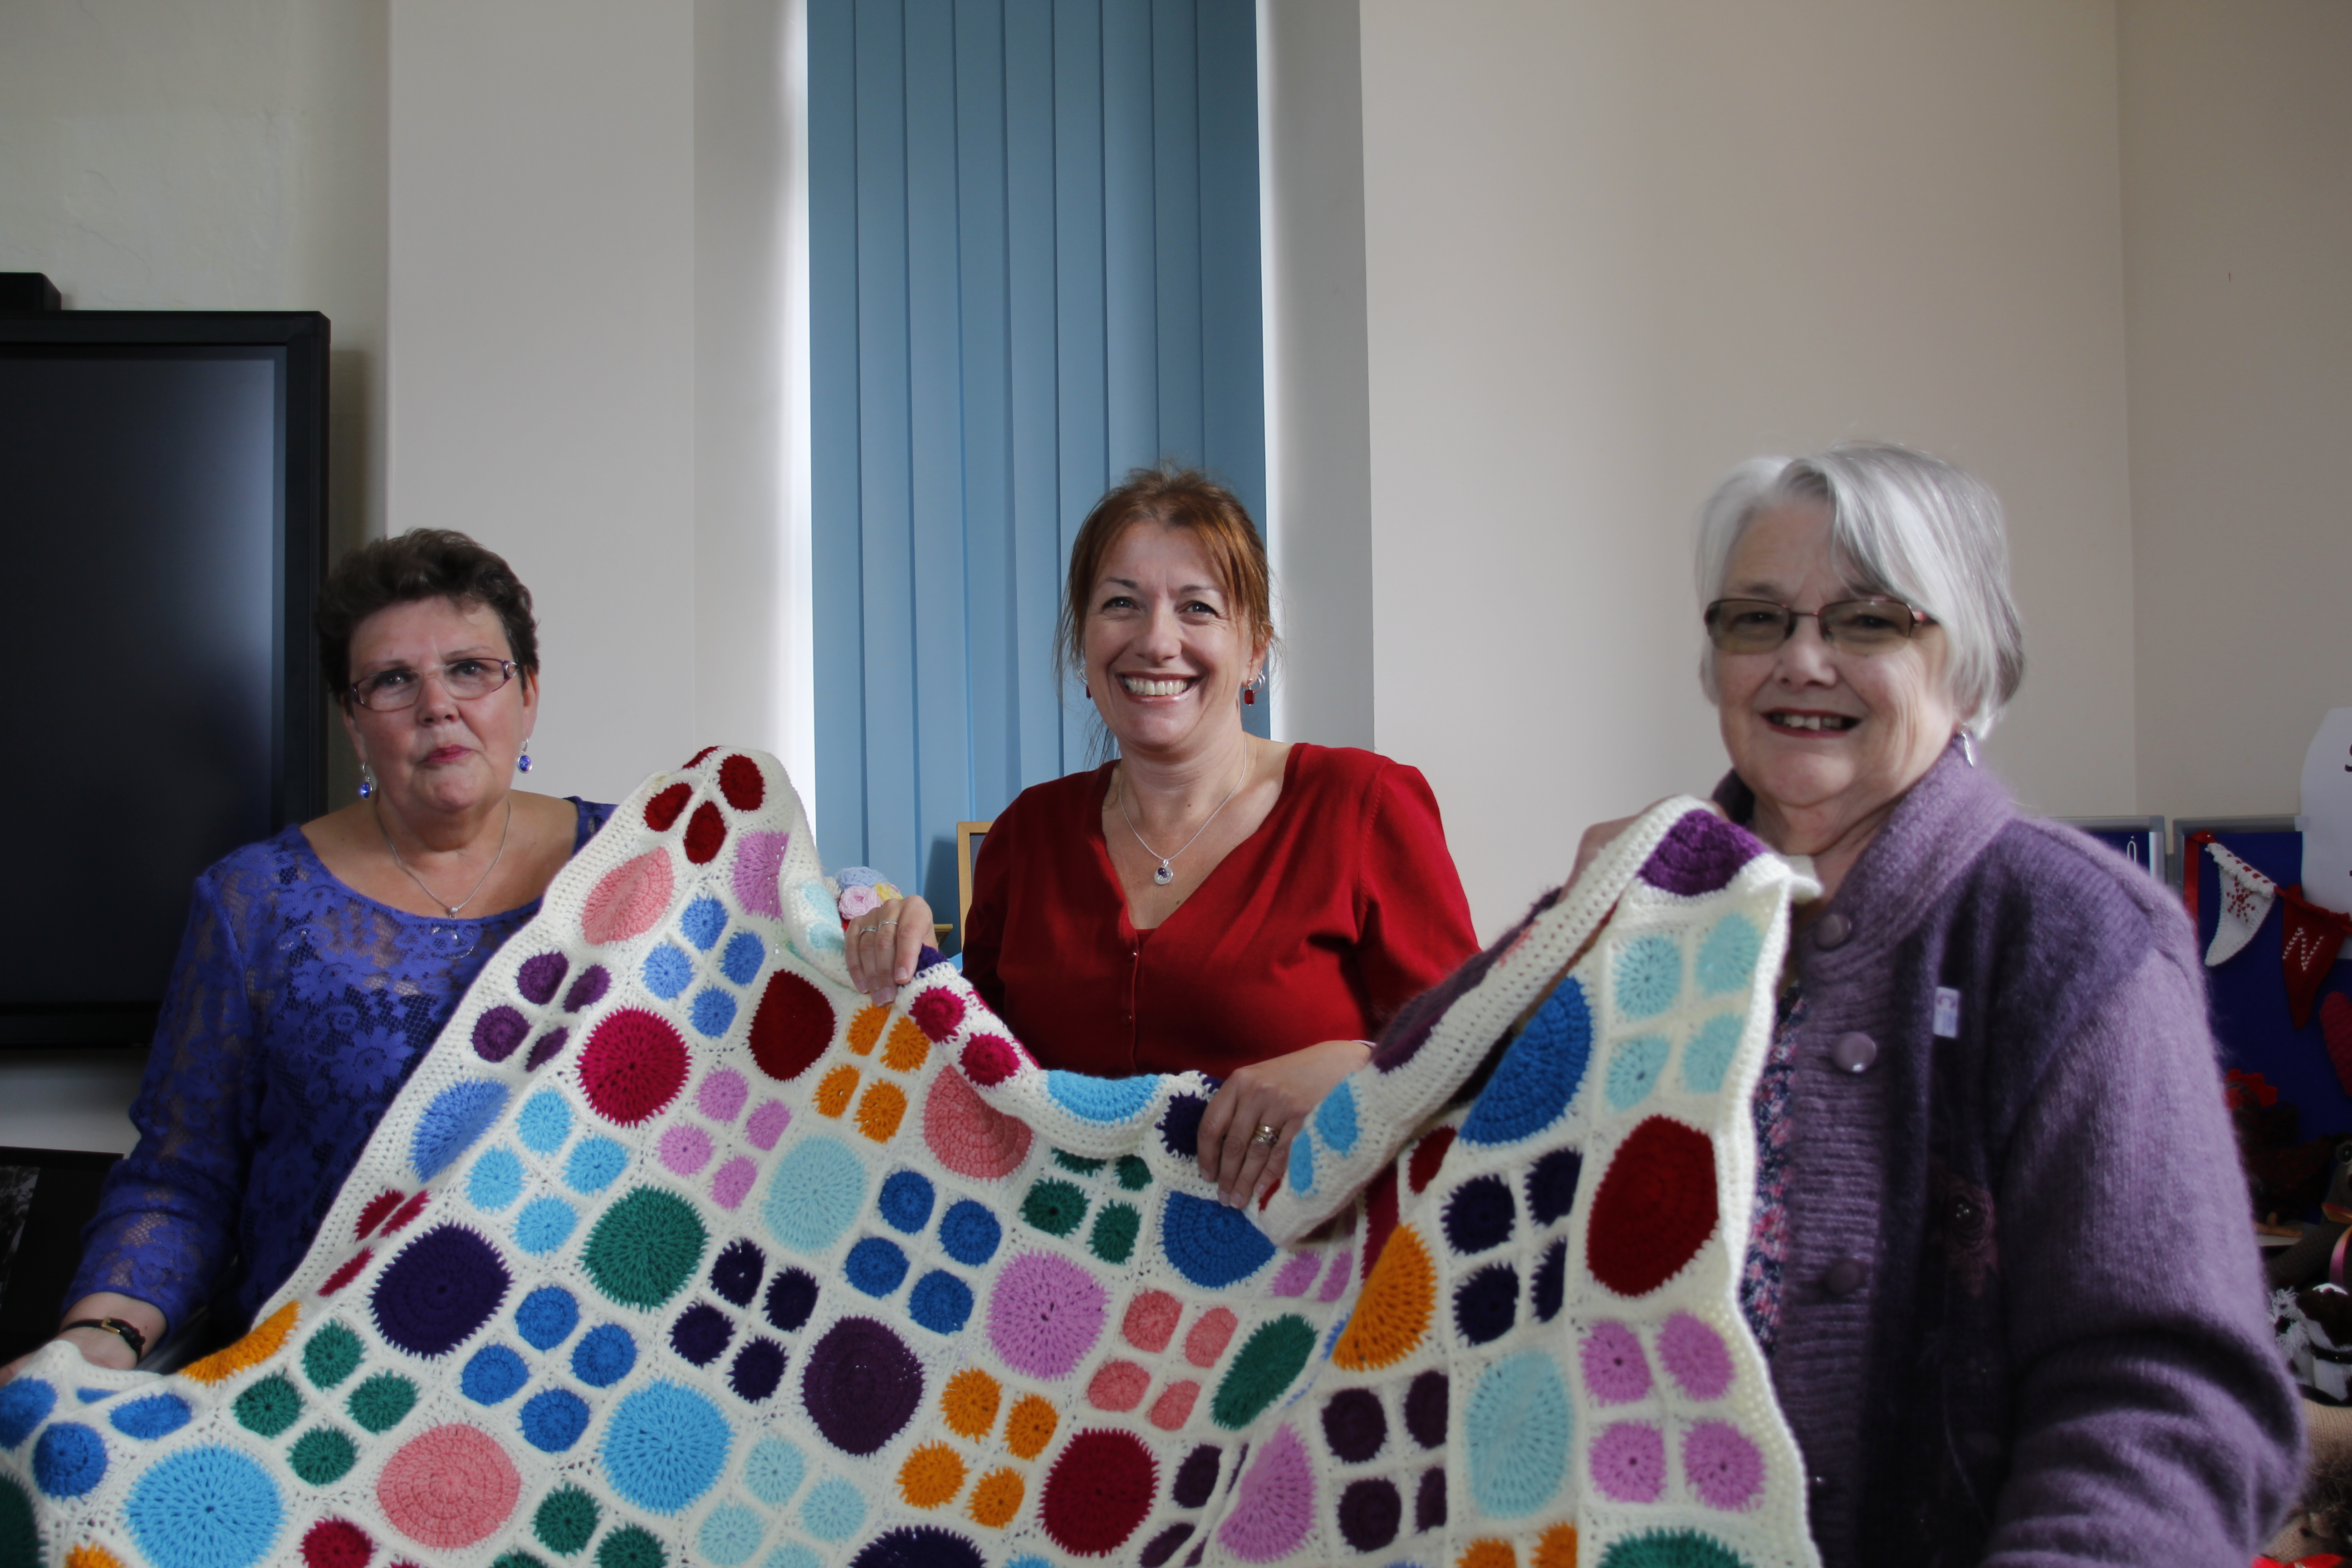 A handmade blanket donated to the charity event at ClayTAWC